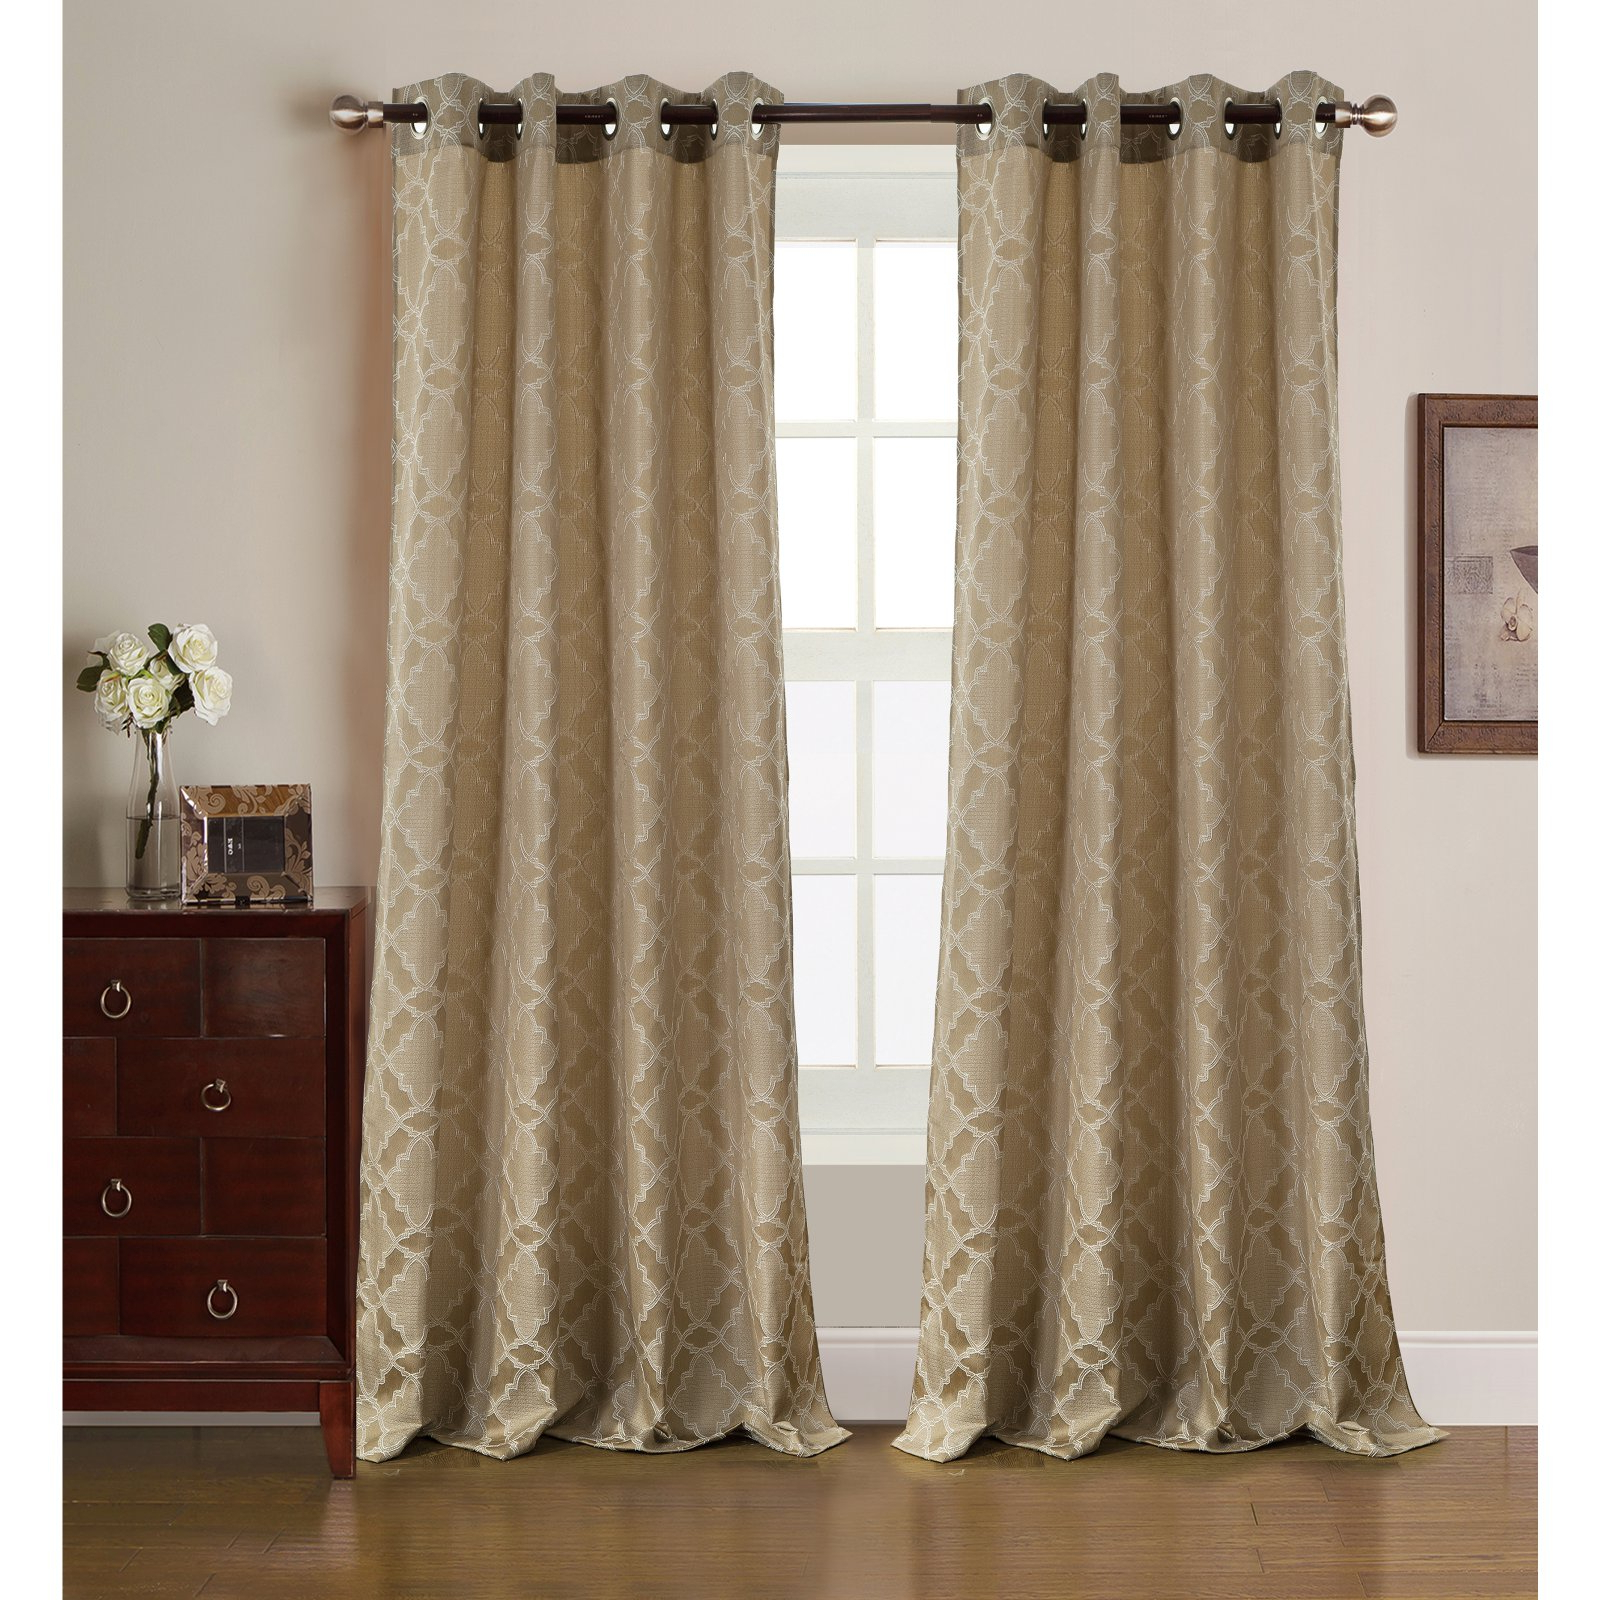 Rt Designers Collection Morgan Jacquard Grommet Curtain Inside Newest Gracewood Hollow Tucakovic Energy Efficient Fabric Blackout Curtains (Gallery 6 of 20)